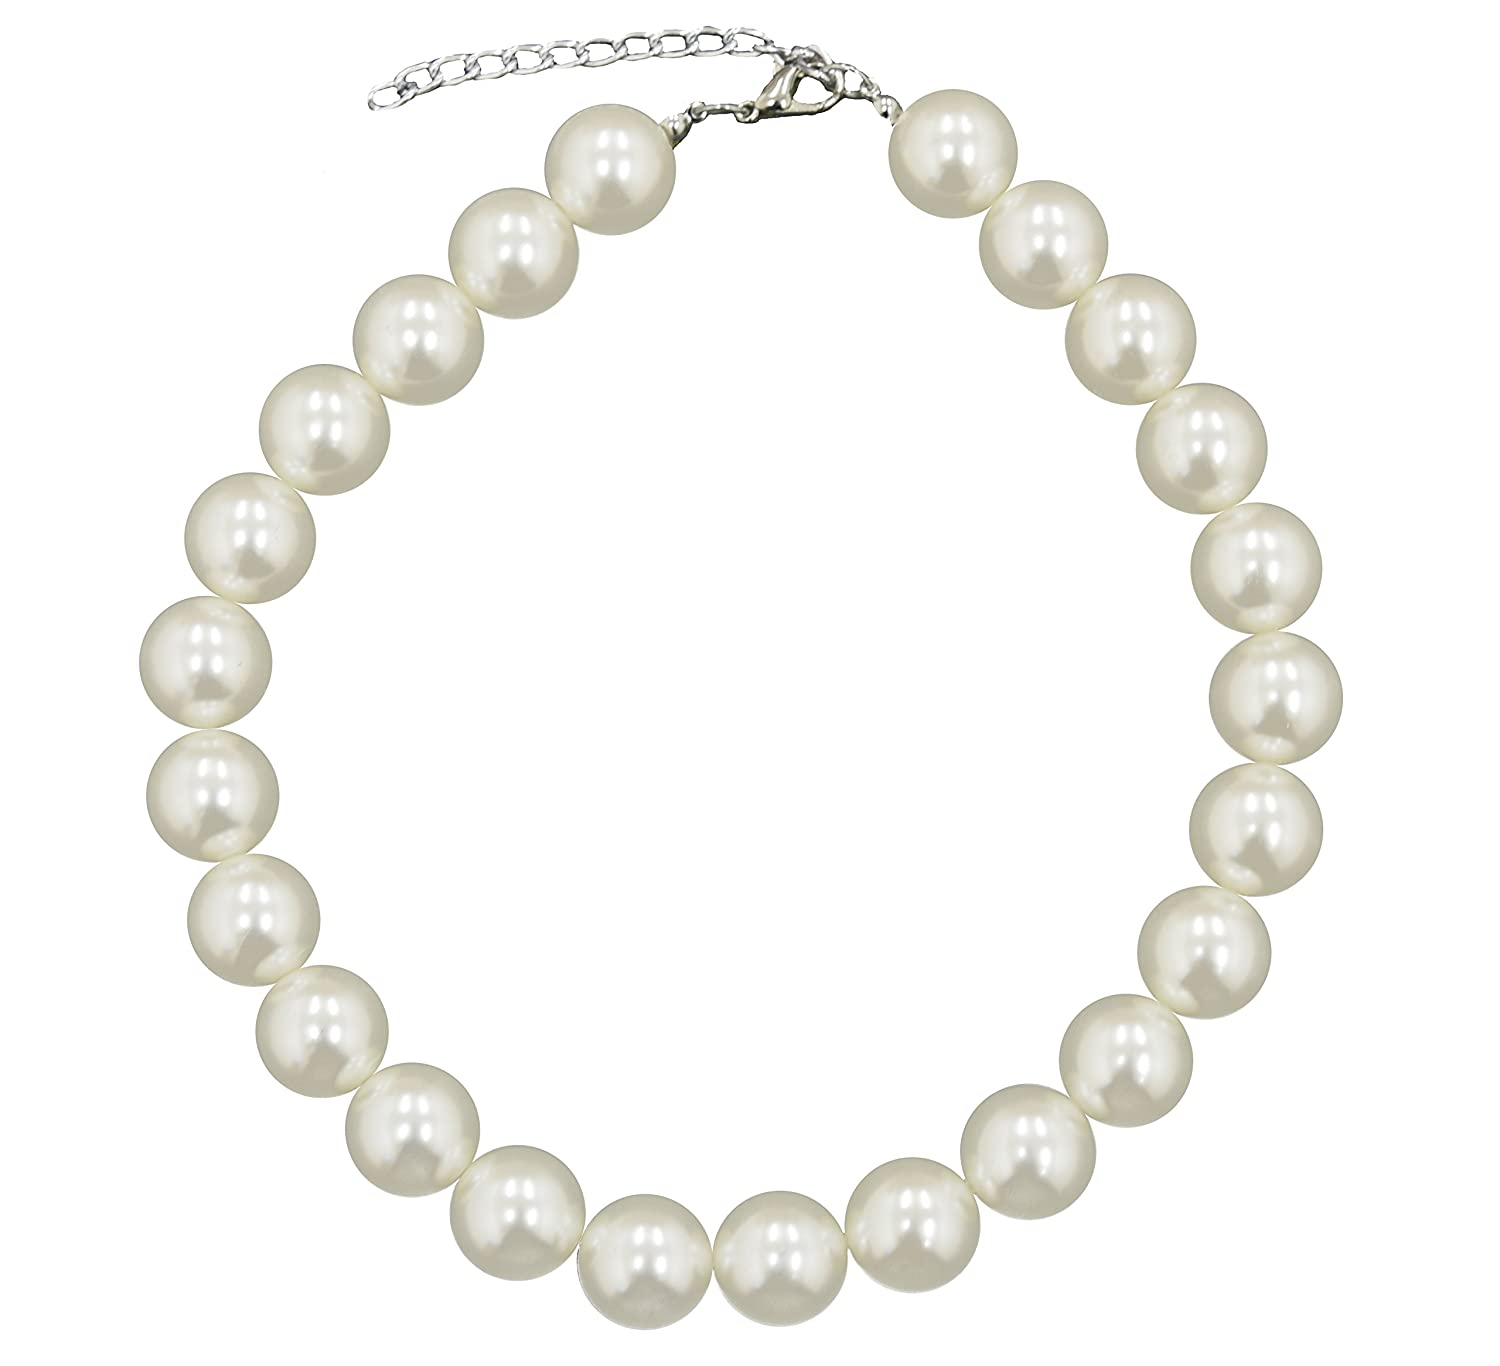 8ac2f664bb897 Caprilite 18mm Large Big Giant Faux Pearl Necklace Light Cream Vintage  Great Gatsby: Amazon.co.uk: Jewellery